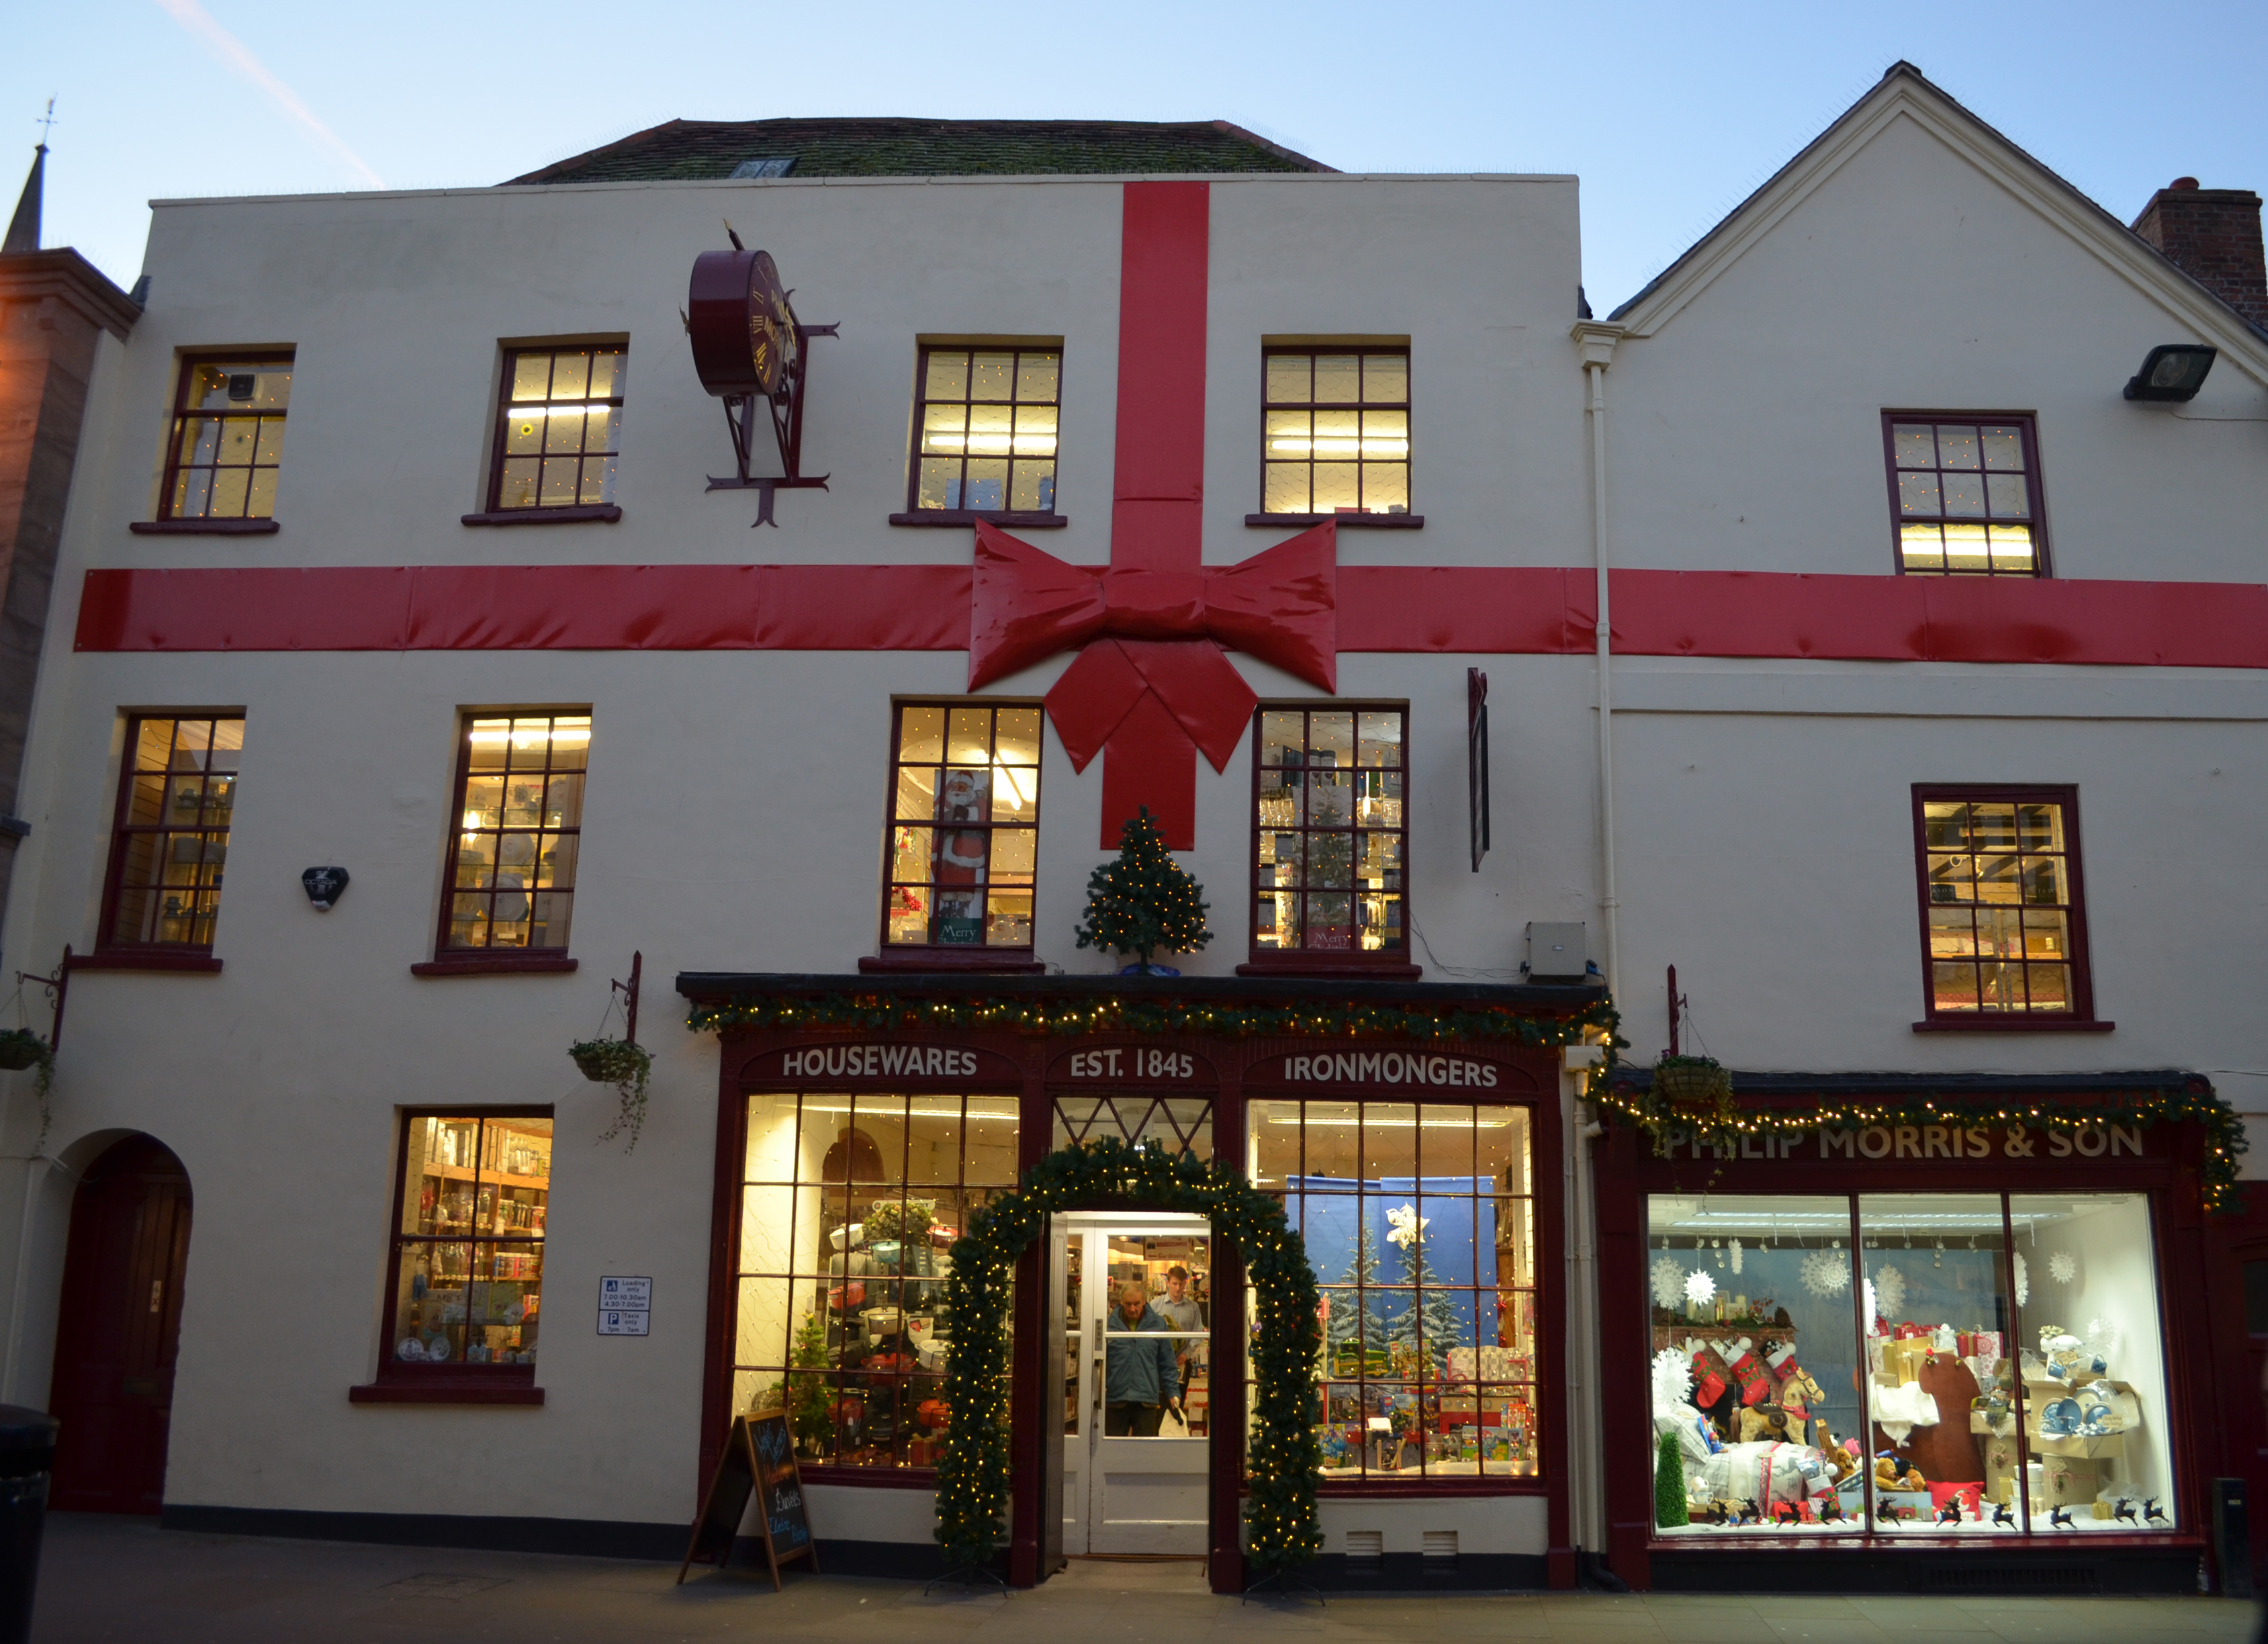 Philip Morris and Son Hereford wrap Christmas up this year with a giant bow and ribbon on their 500+ year old building!